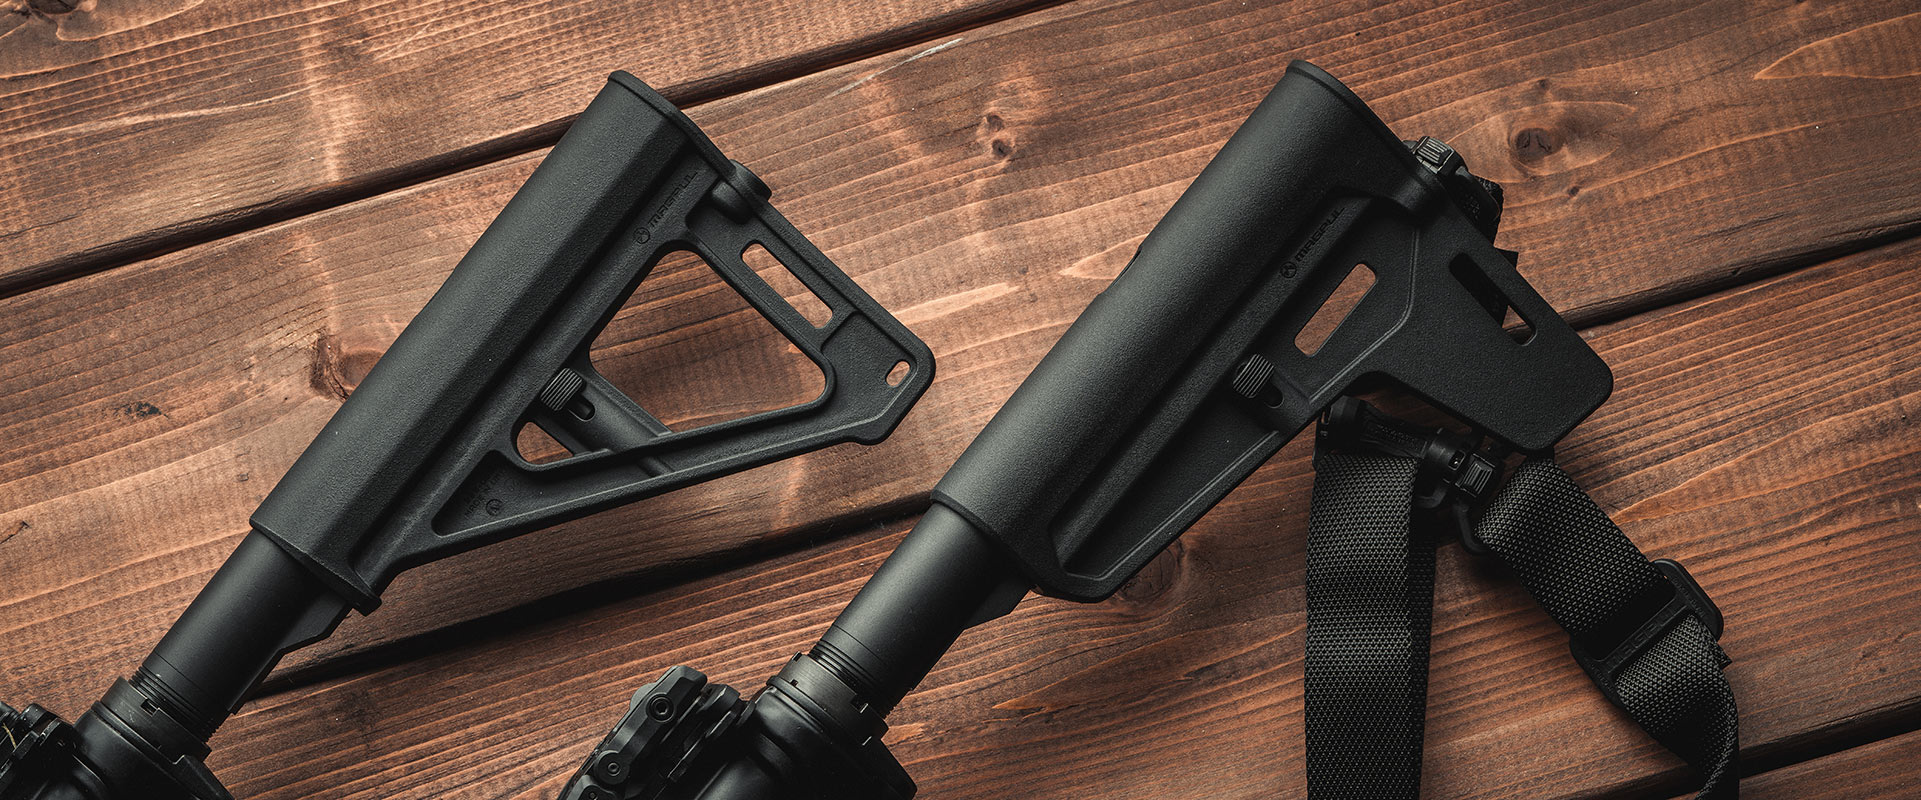 Magpul BTR and BSL Arm Braces side by side on wooden board table